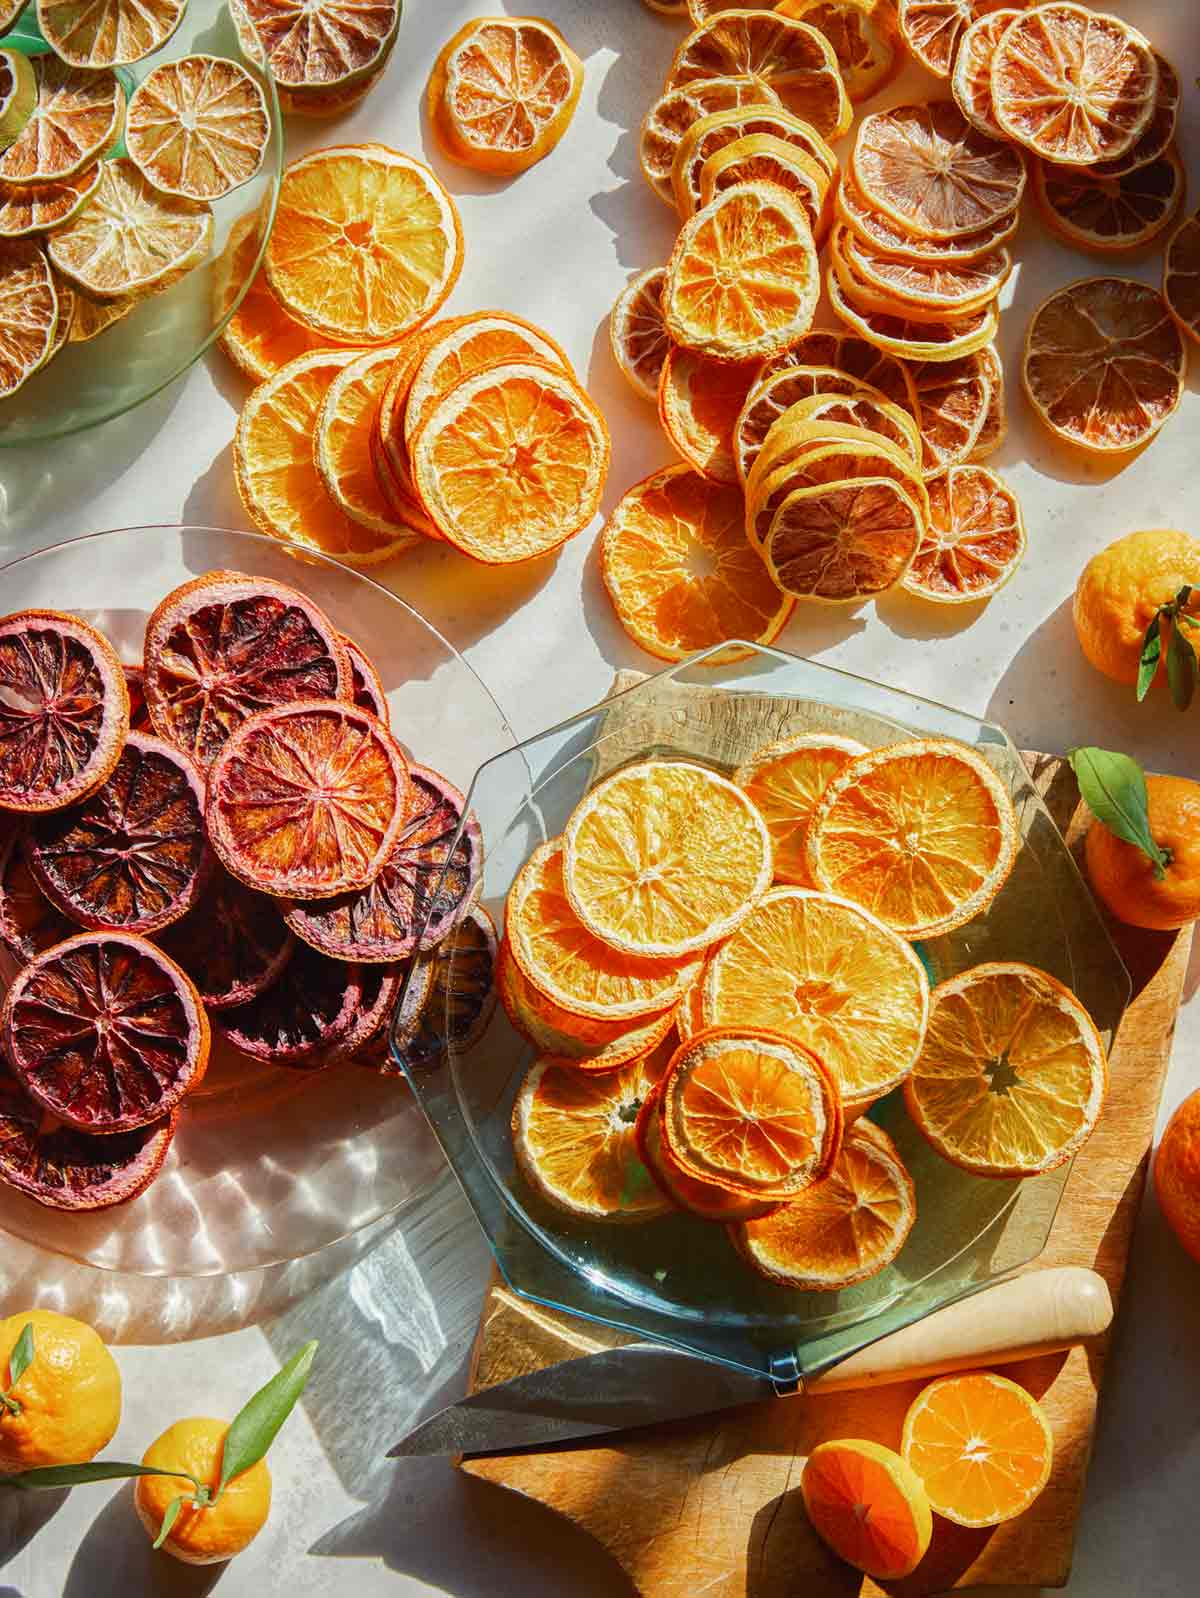 Dehydrated citrus on a surface on plates with fresh citrus.